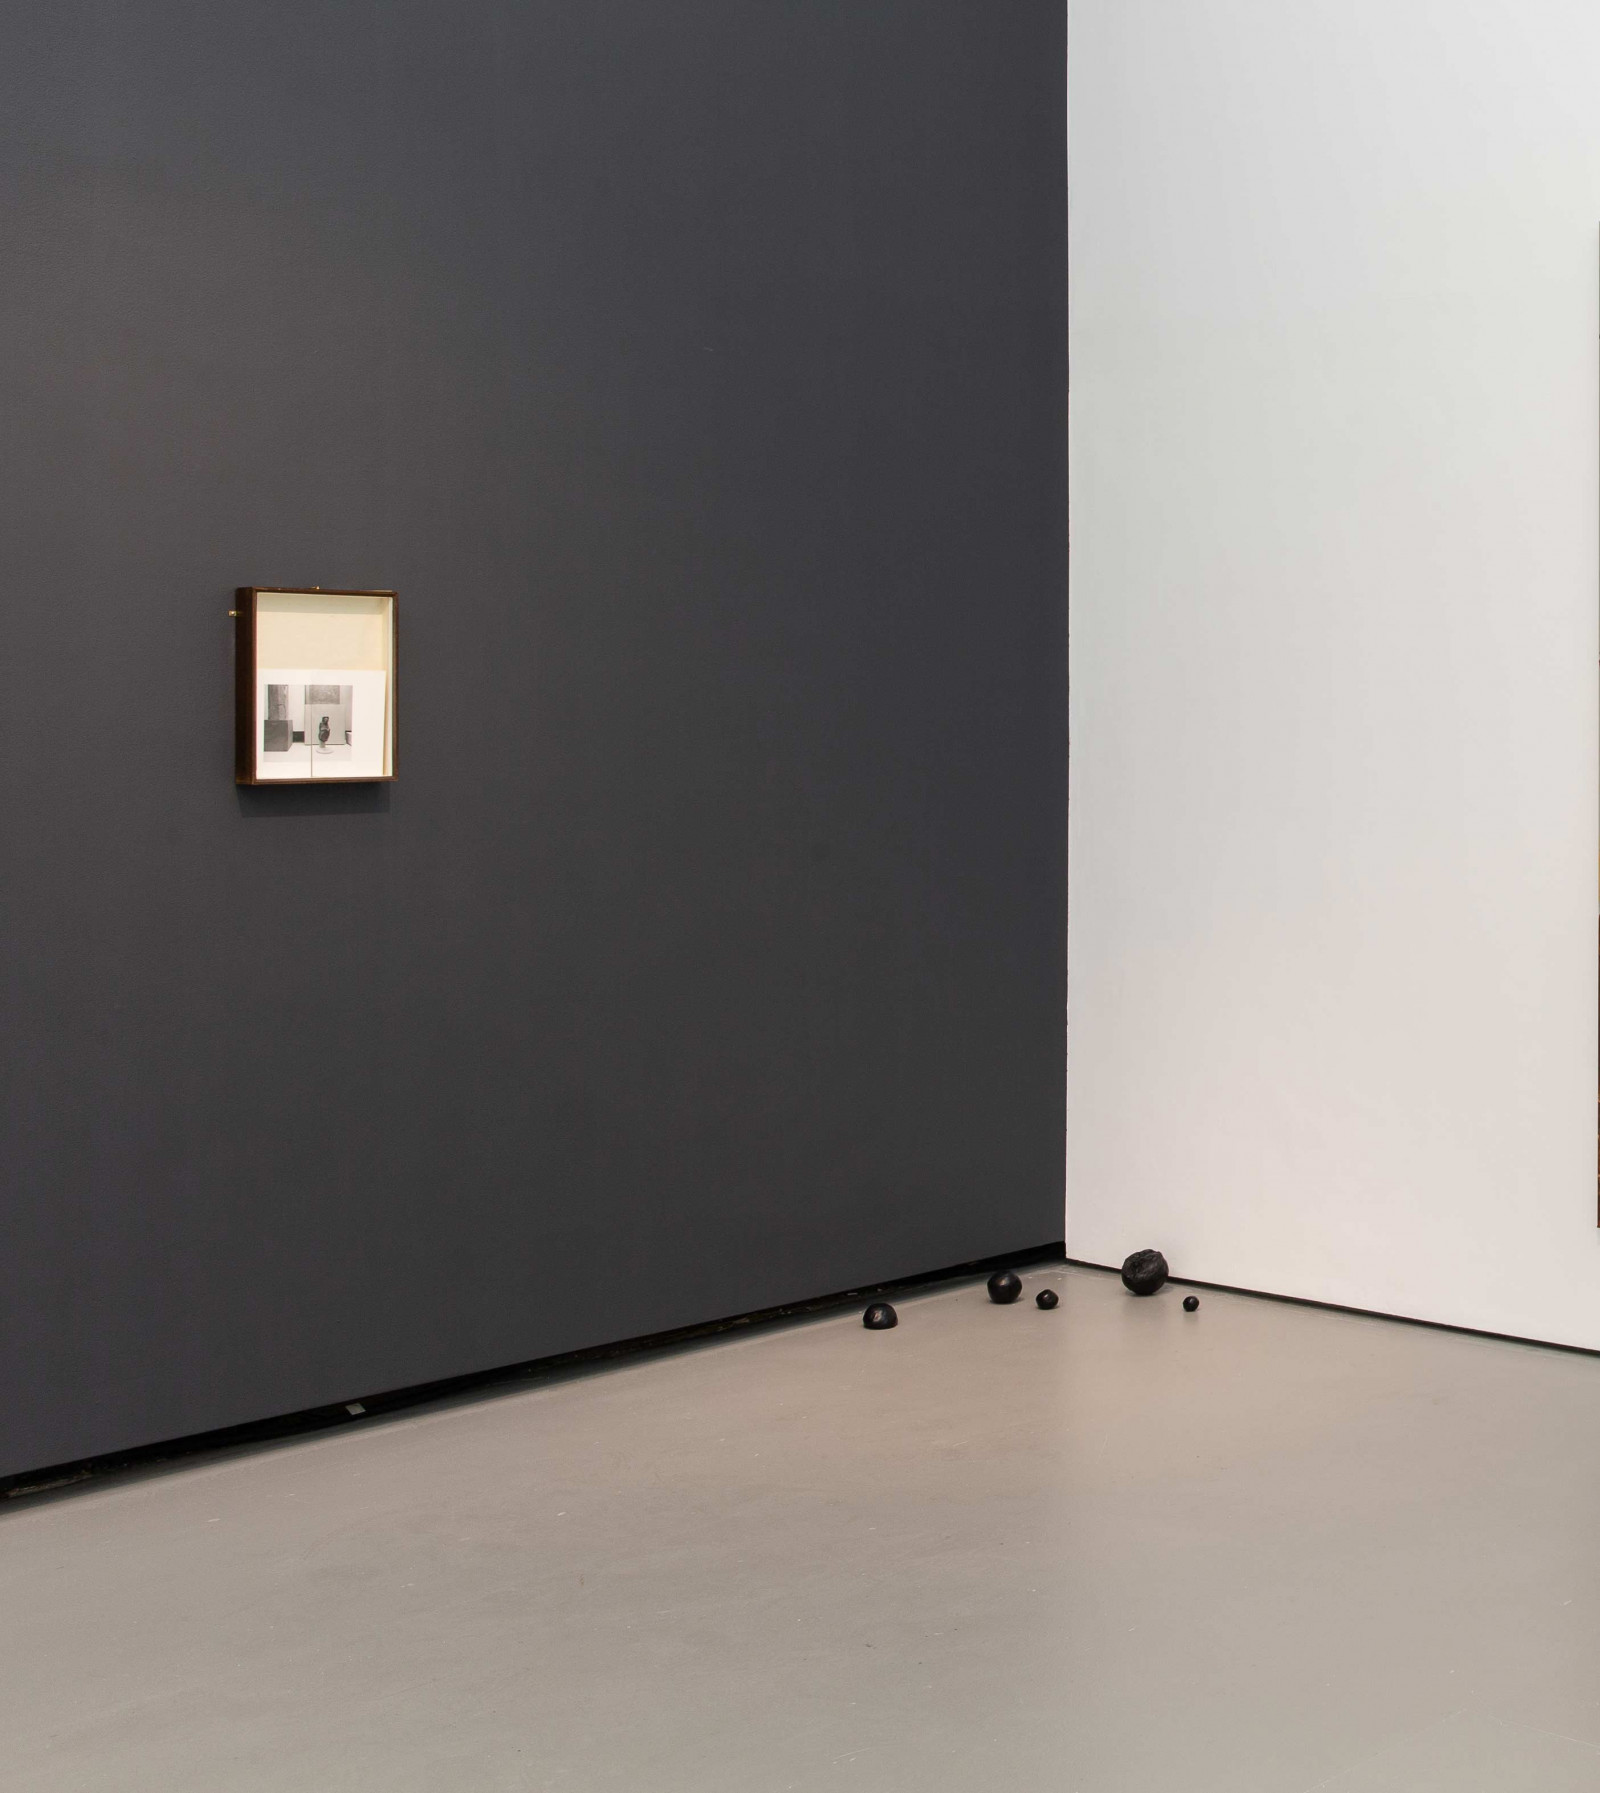 Towner International 2020, Towner Eastbourne. Selected by Mike Nelson, Polly Staple & Noelle Collins. Photo: Rob Hill.